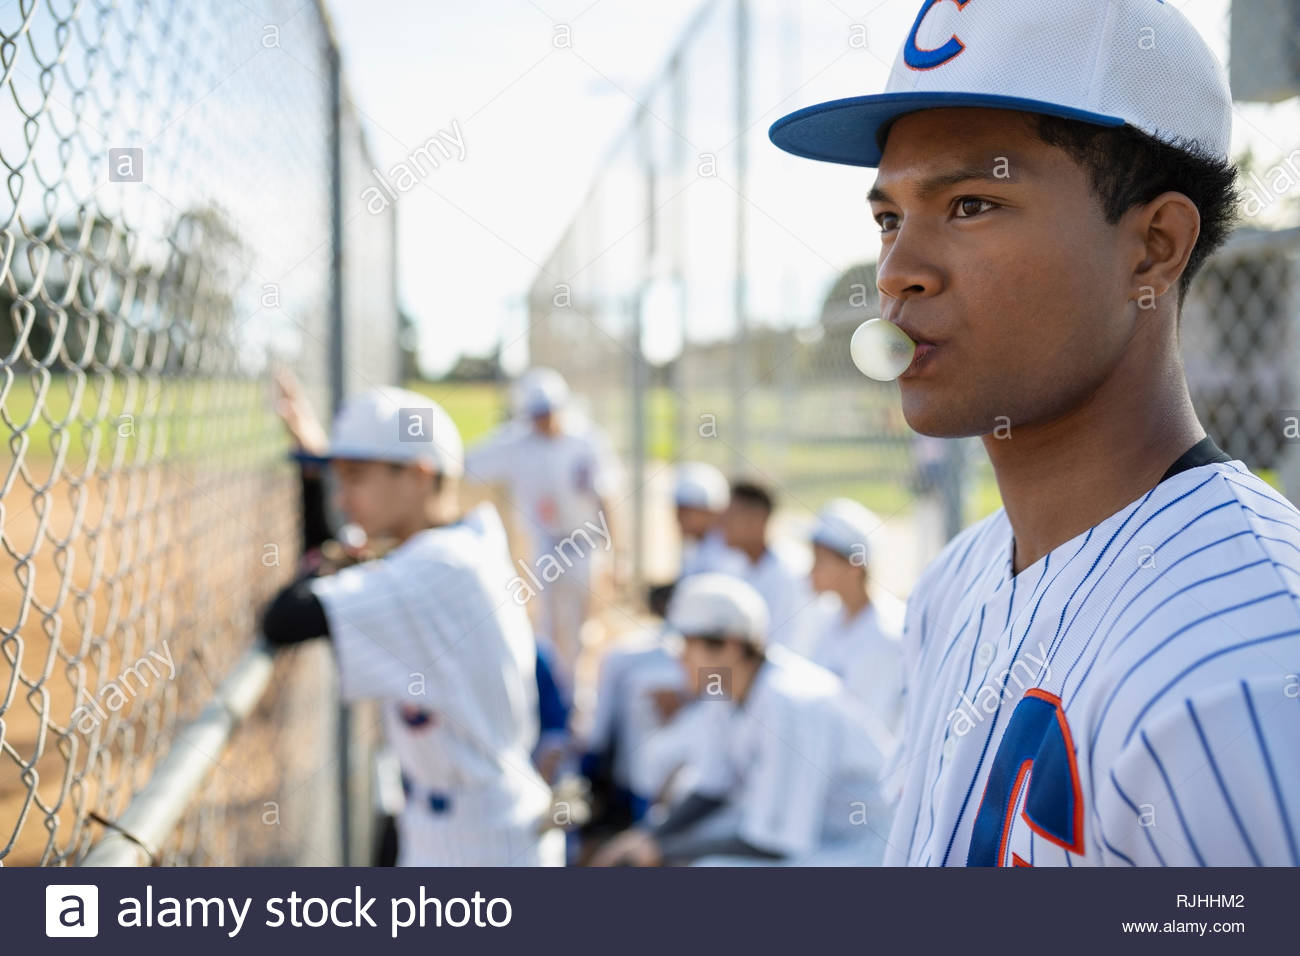 Joueur de baseball blowing bubble gum bubble derrière fence Photo Stock